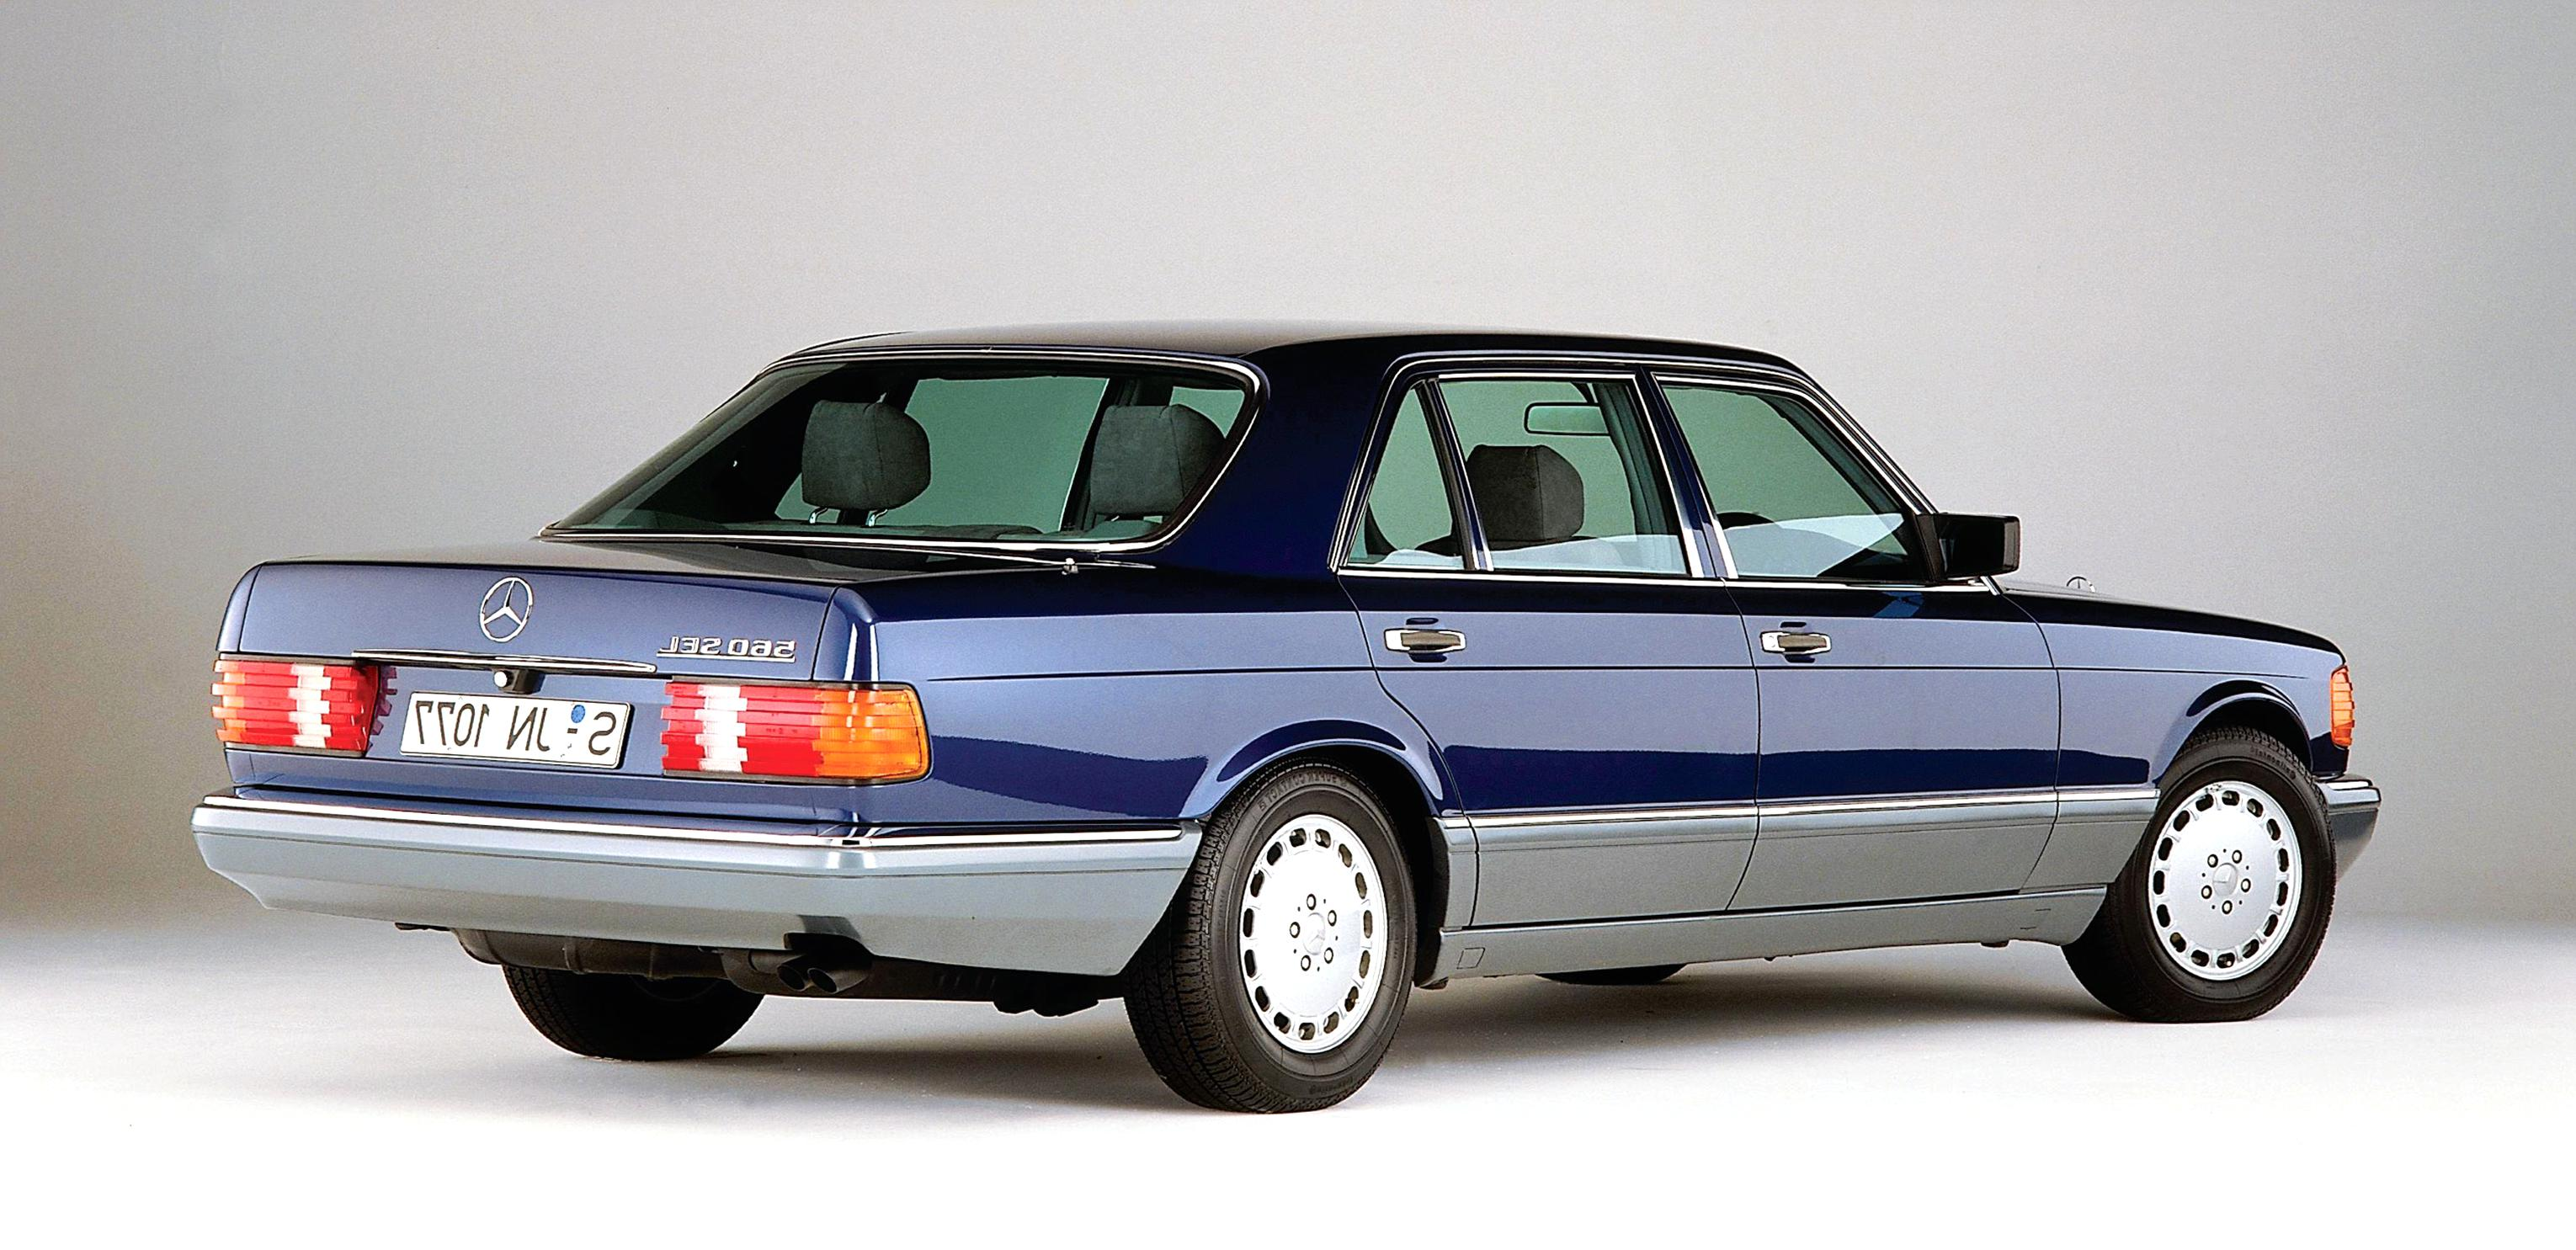 w126 for sale